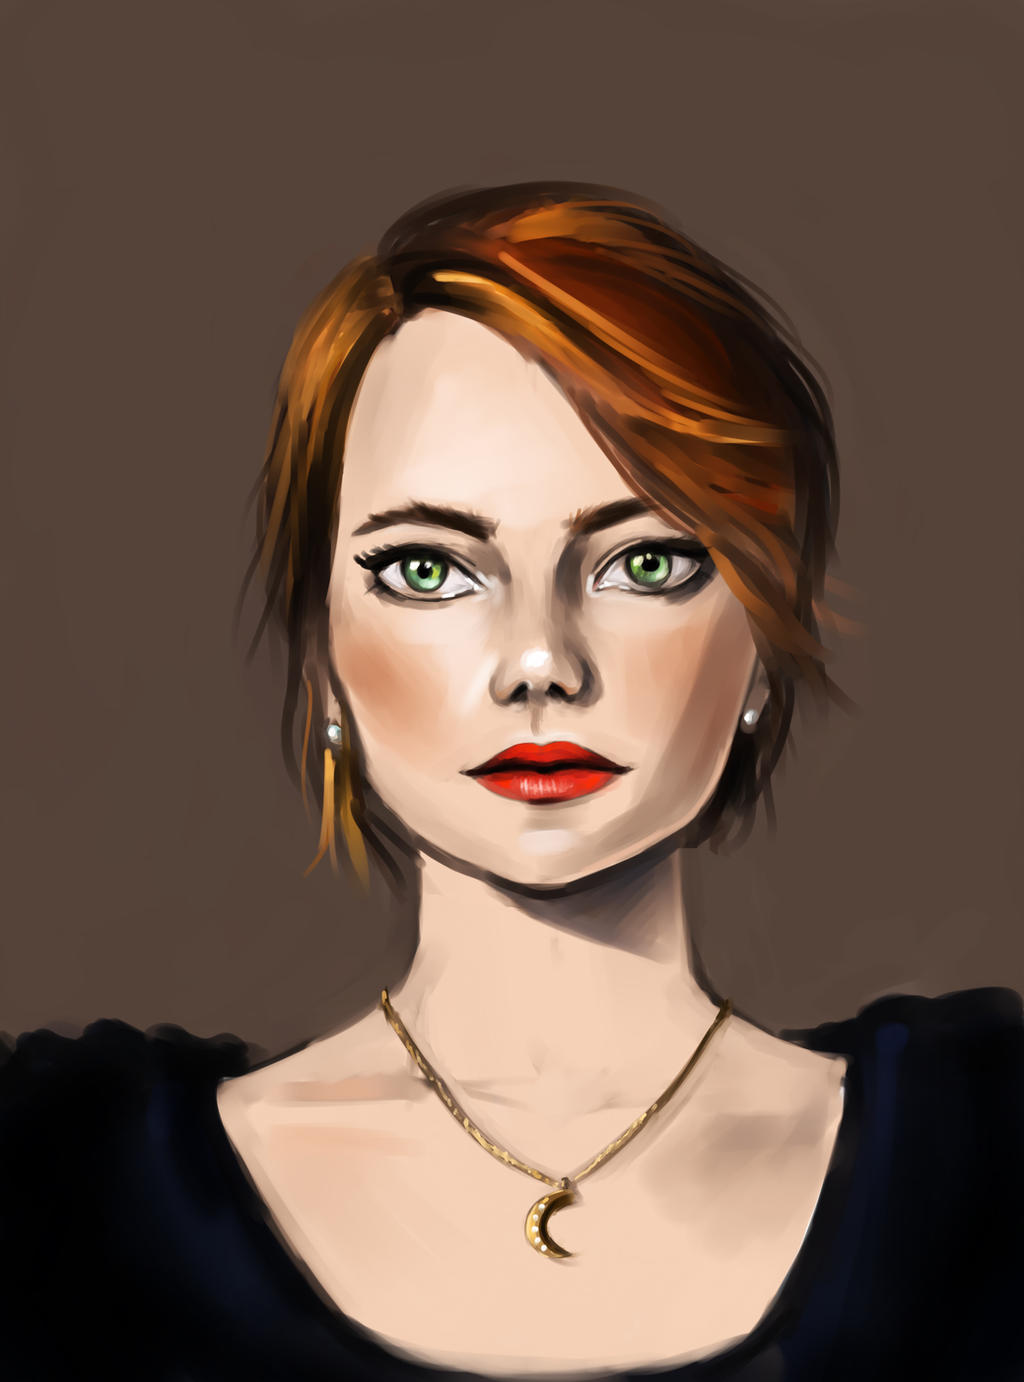 It's Emma Stone by Lalochnica